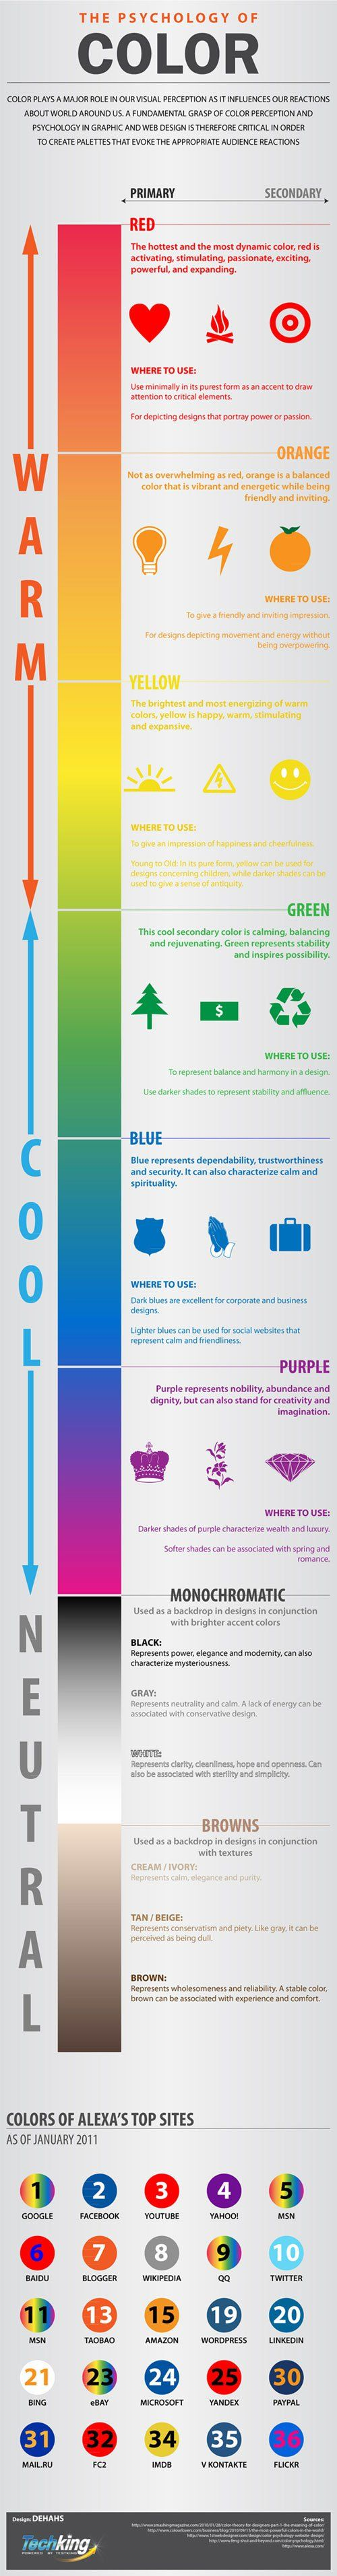 New Infographic: The Psychology of Color – Must See for Web Designers